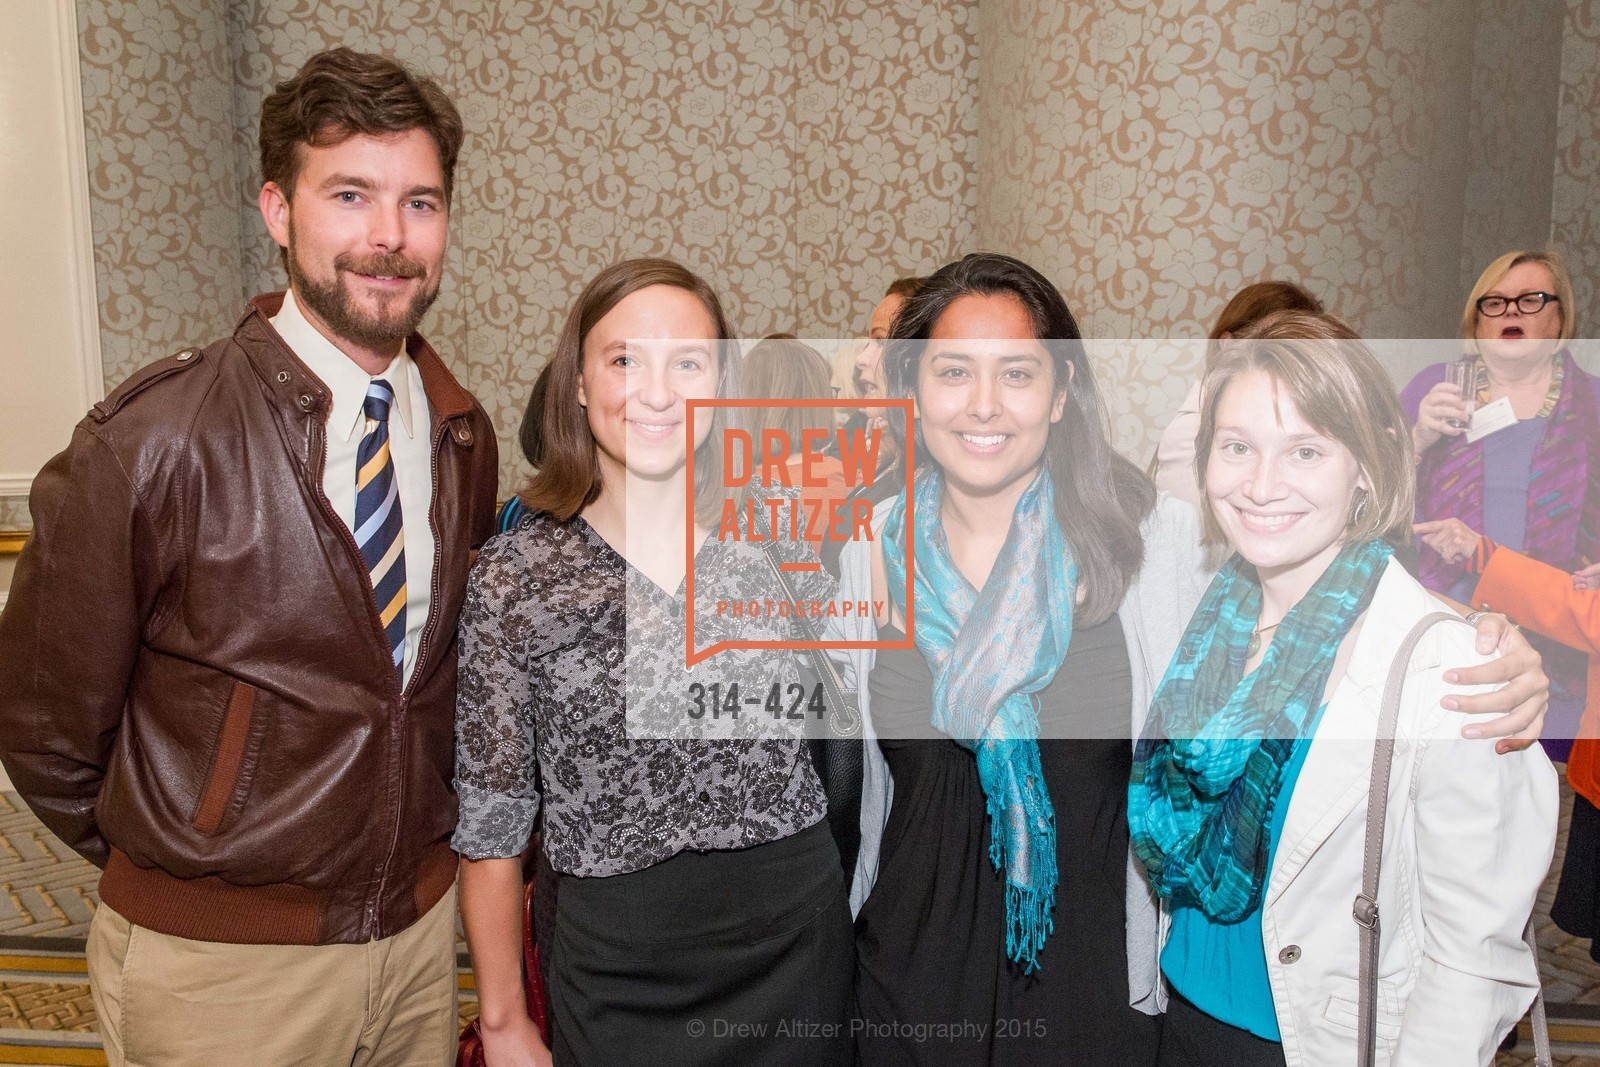 Matt Whalen, Amber Schedlbauer, Millie Copara, Abby Laman-Maharg, 2015 ARCS Foundation Scholar Awards Luncheon, The Fairmont San Francisco. 950 Mason St, October 29th, 2015,Drew Altizer, Drew Altizer Photography, full-service agency, private events, San Francisco photographer, photographer california